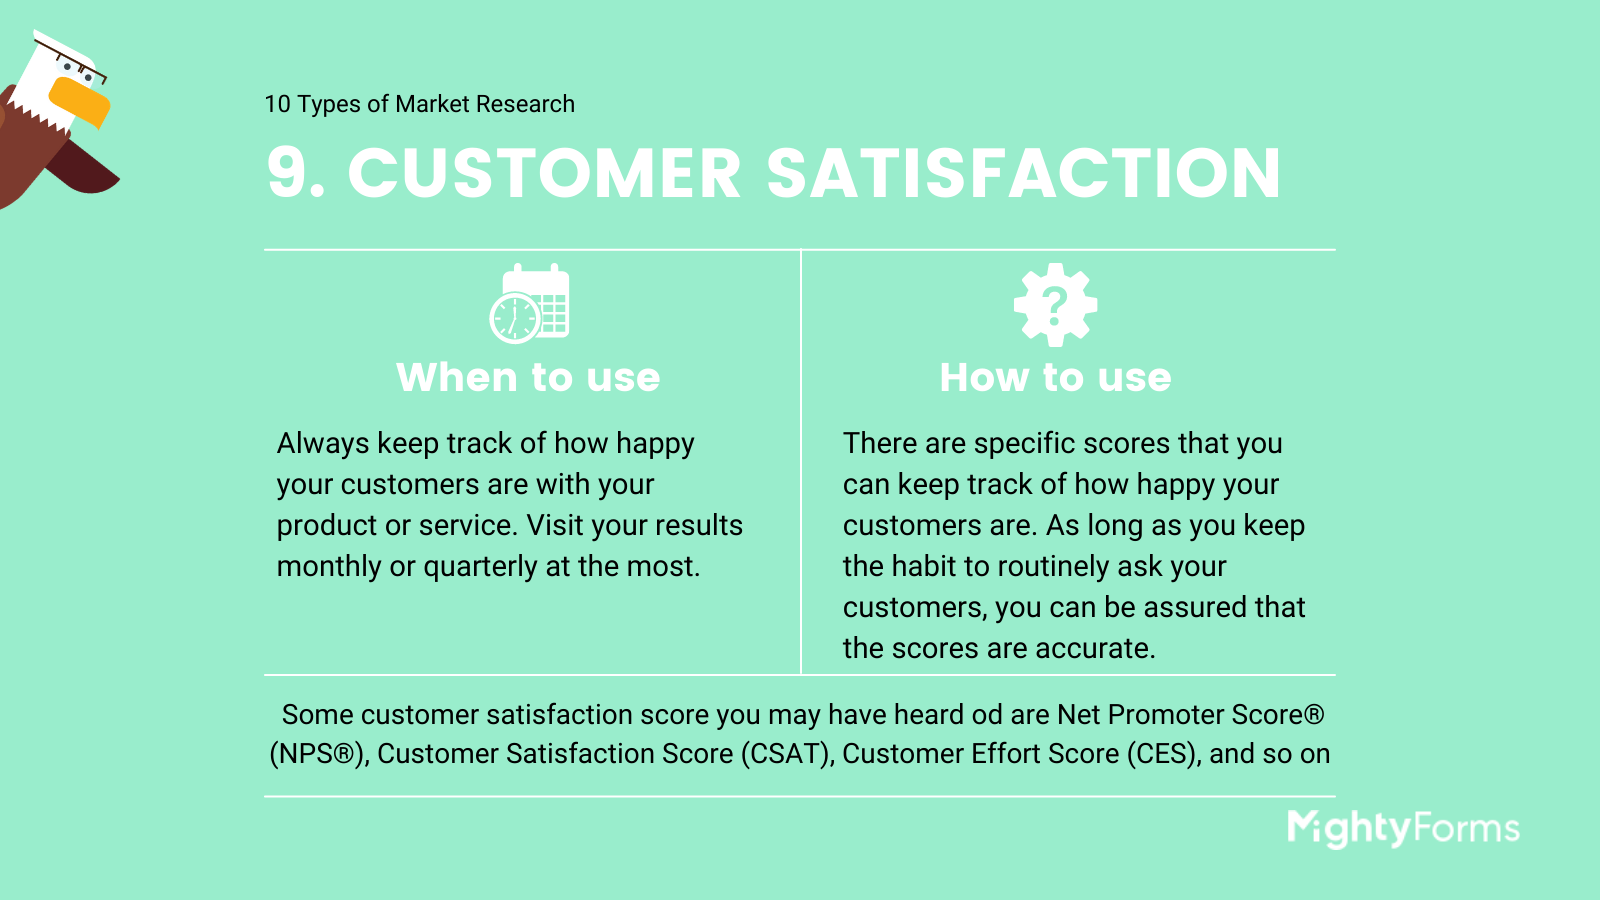 Types of Market Research - Customer satisfaction - infographic_ MightyForms